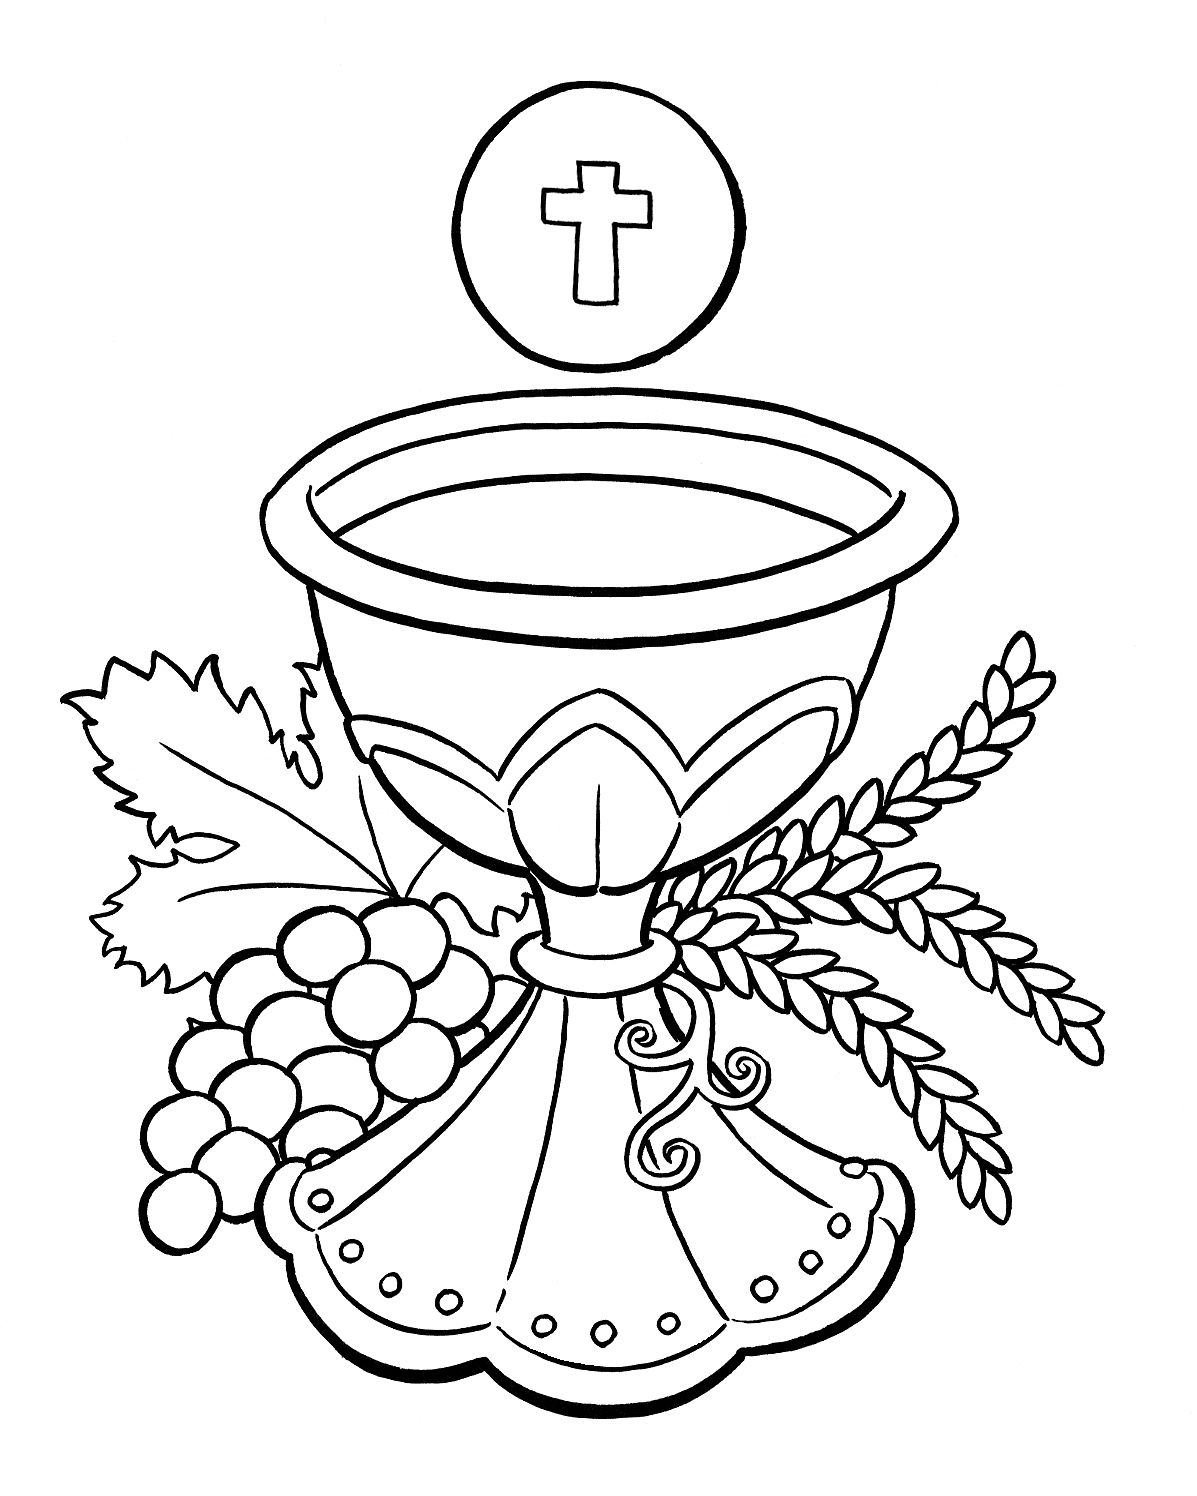 First Communion Chalice Clipart Communion Cup Clip Art